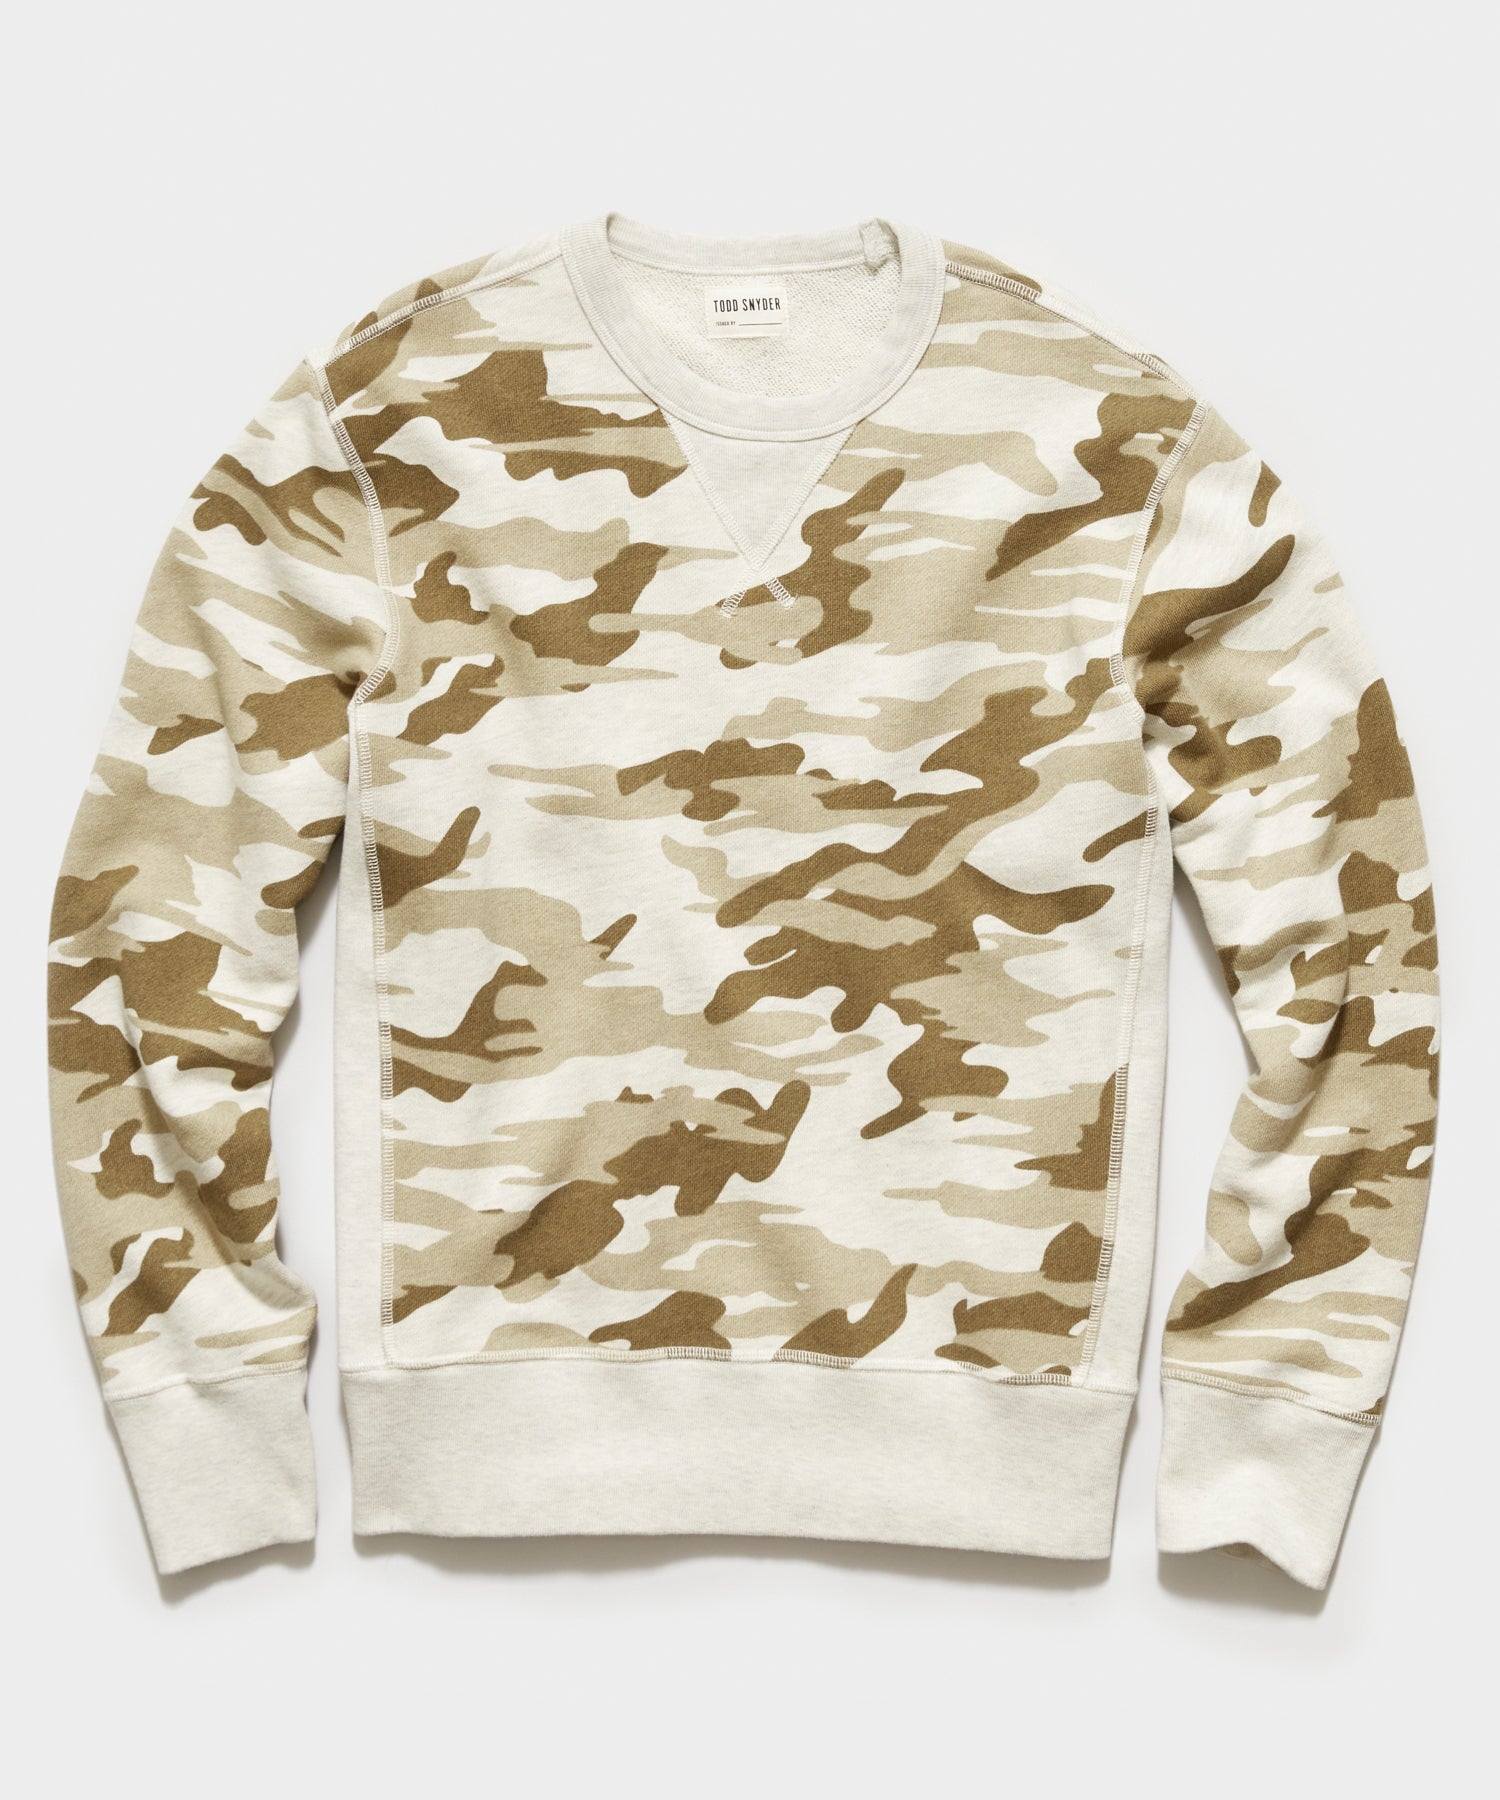 Camo Crewneck Sweatshirt in Sand